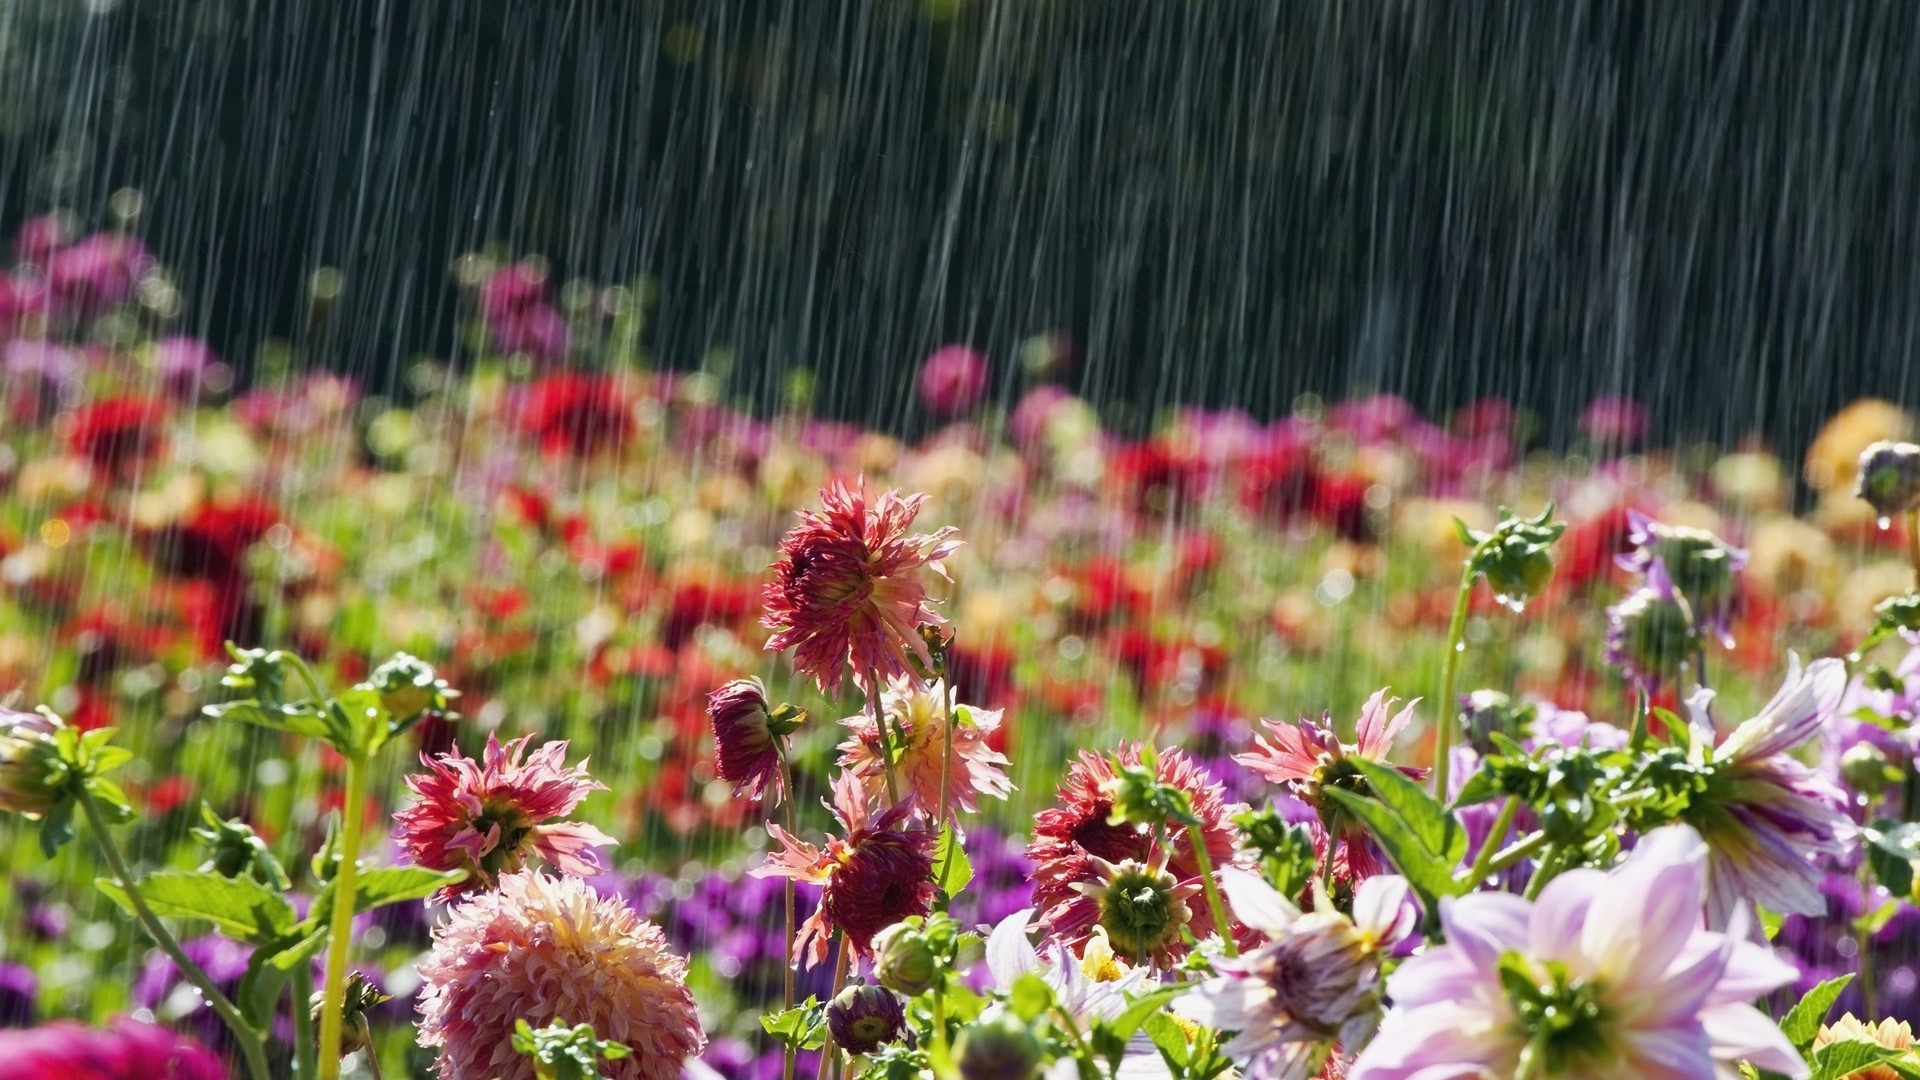 1920x1080 Rainy Season HD Wallpapers, Rain makes our life most beautiful .So, Rainy  season